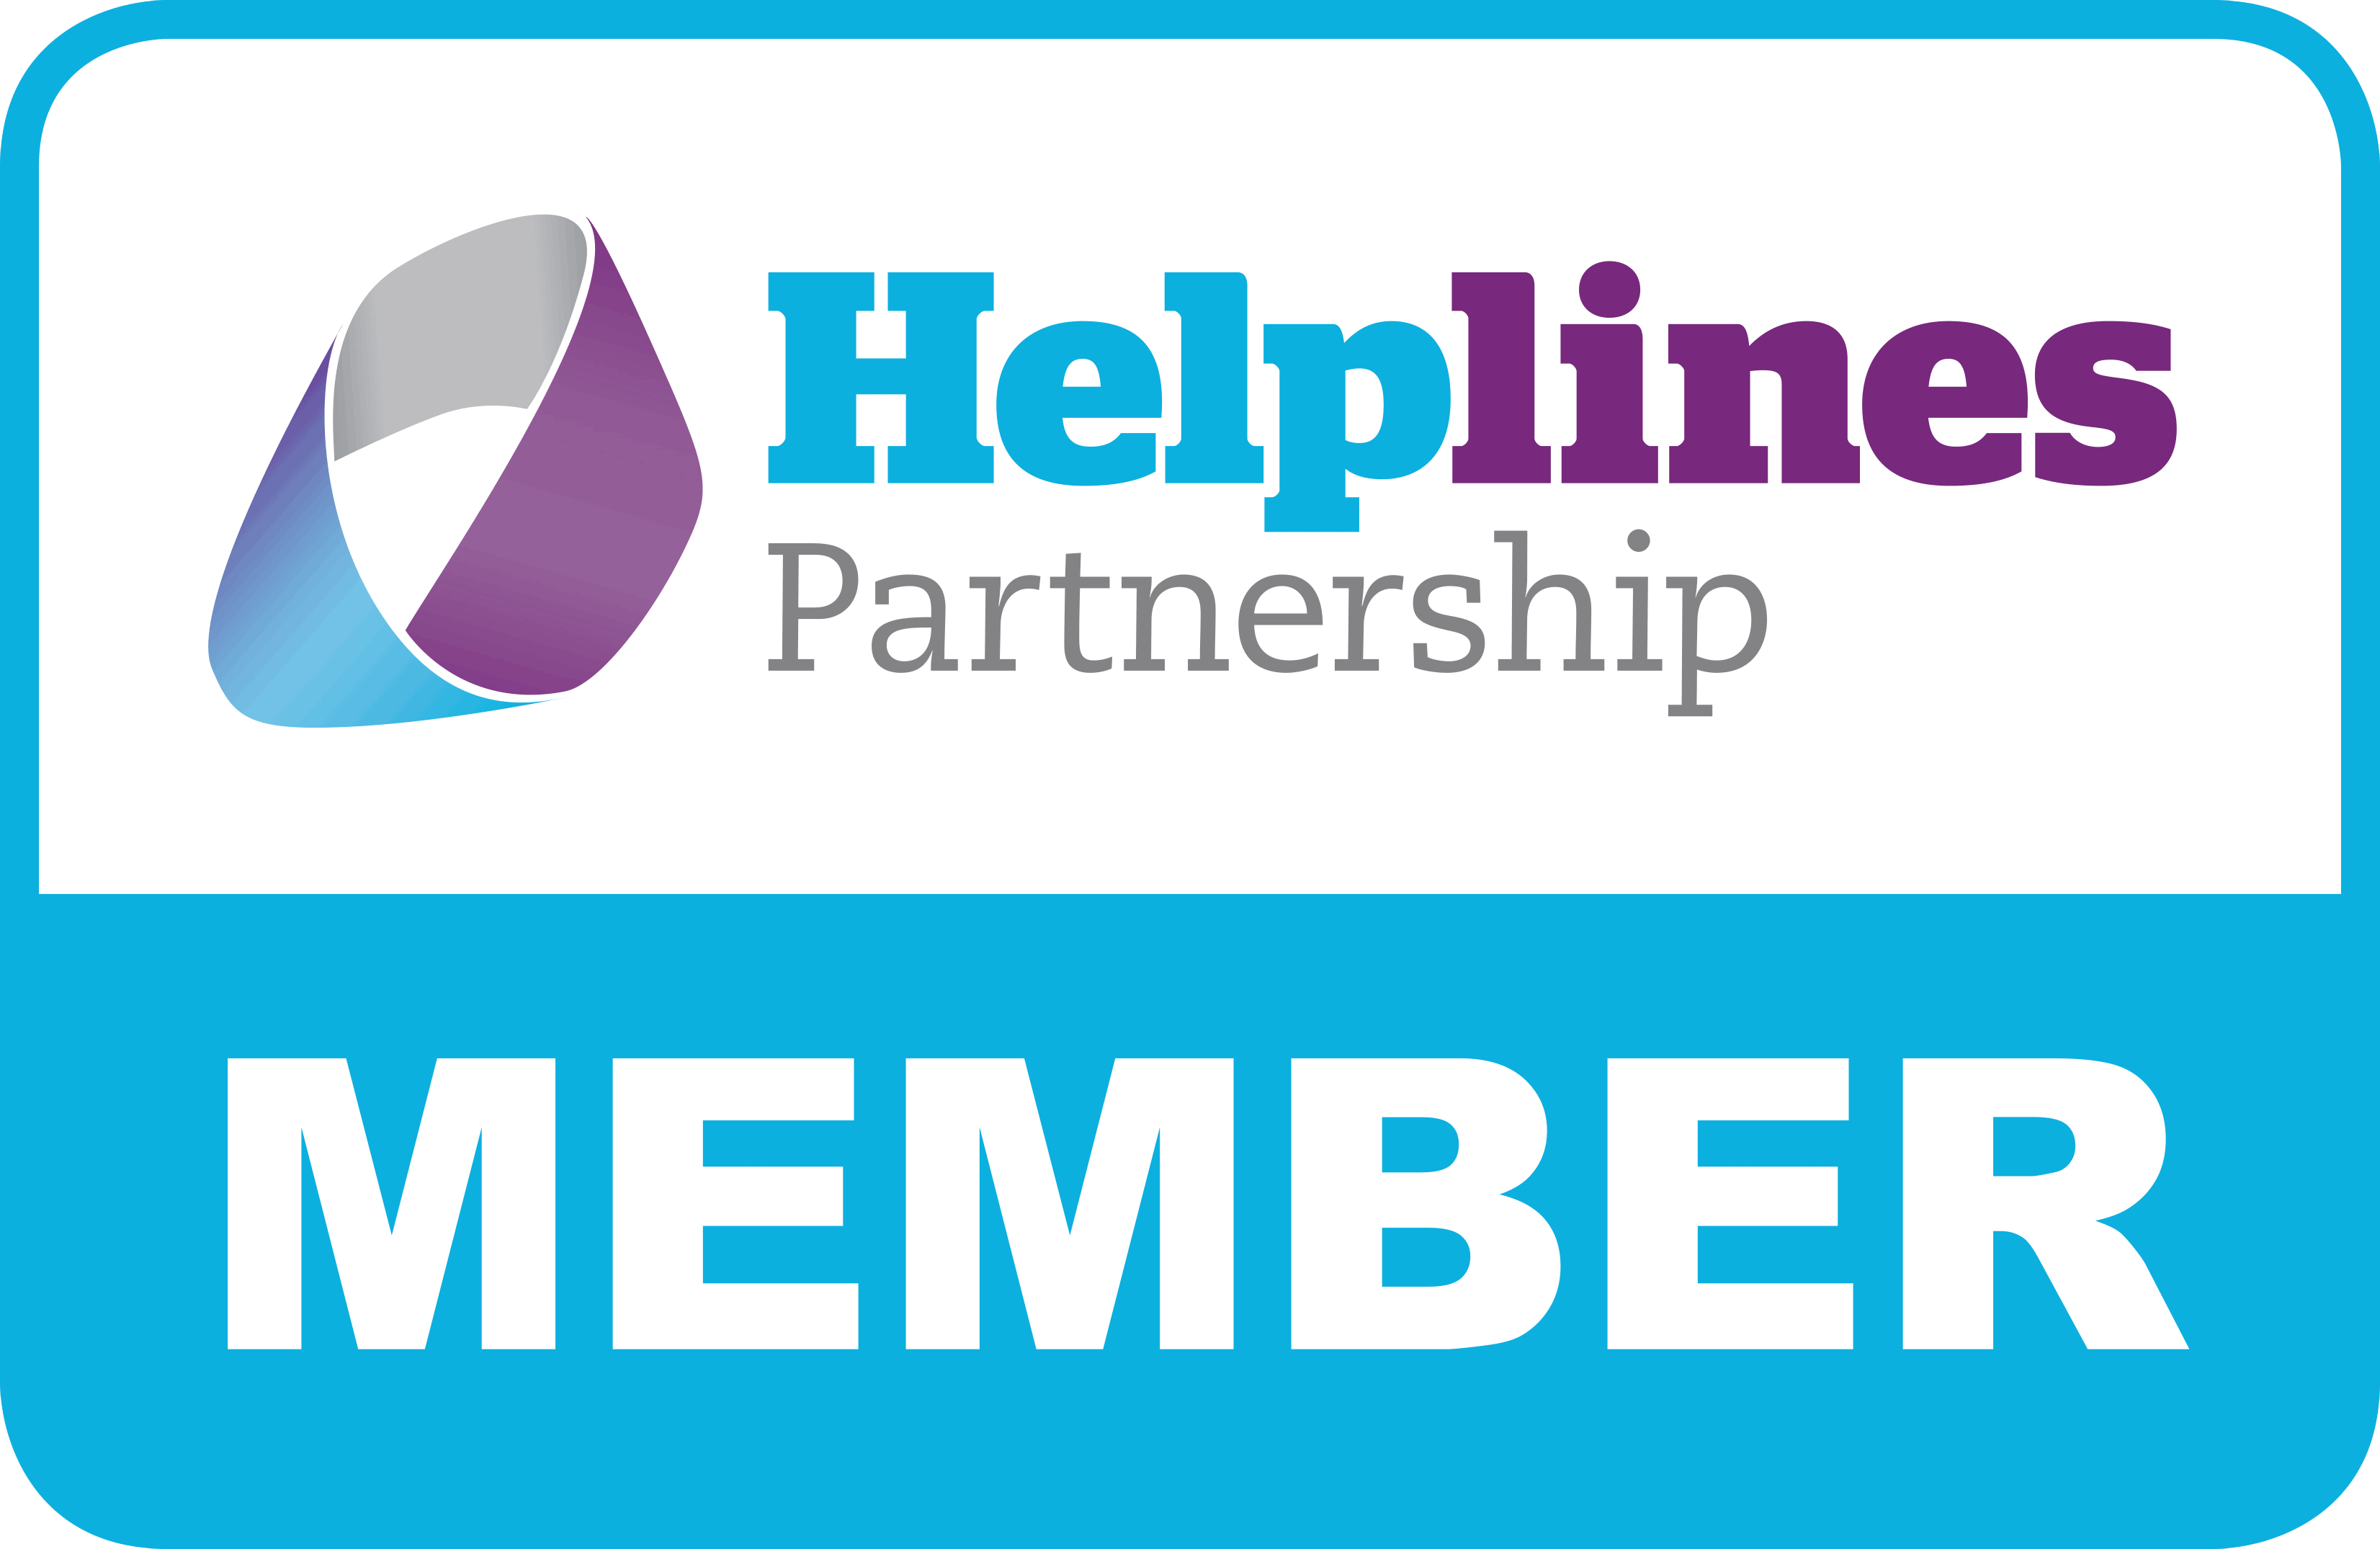 Member of the Helplines Partnership (logo)